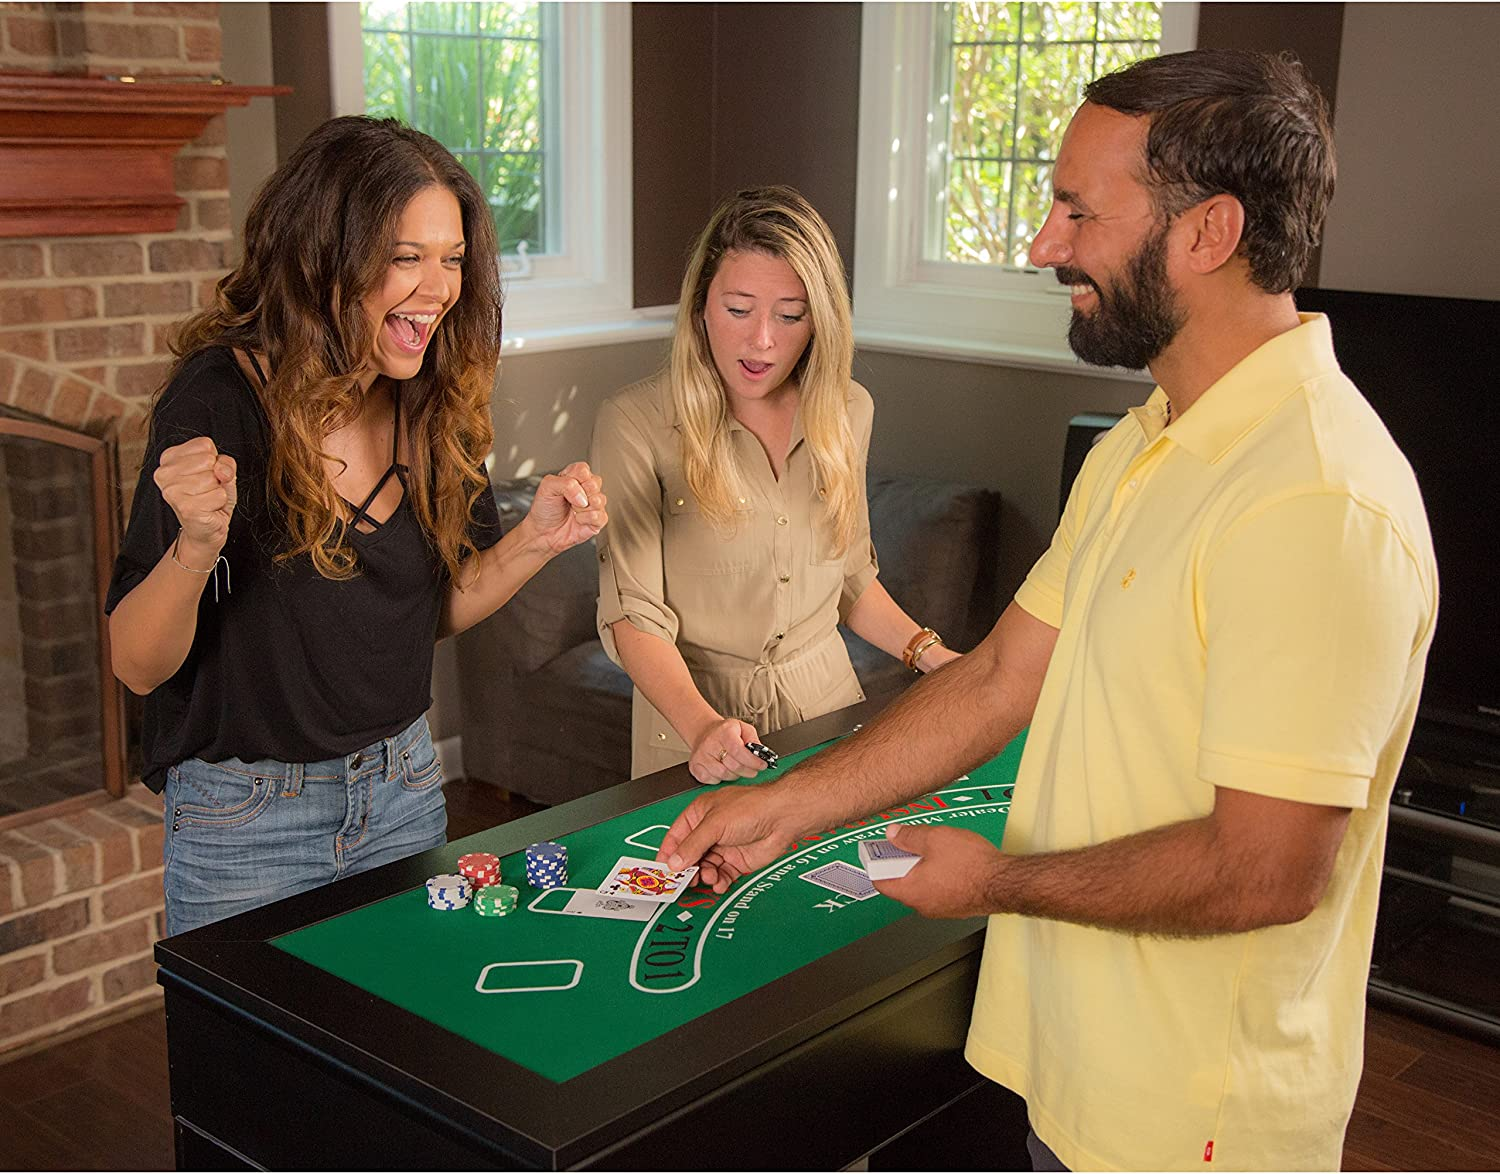 Casino Game Table 4-in-1 Roulette Blackjack Craps with Full Set of Accessories